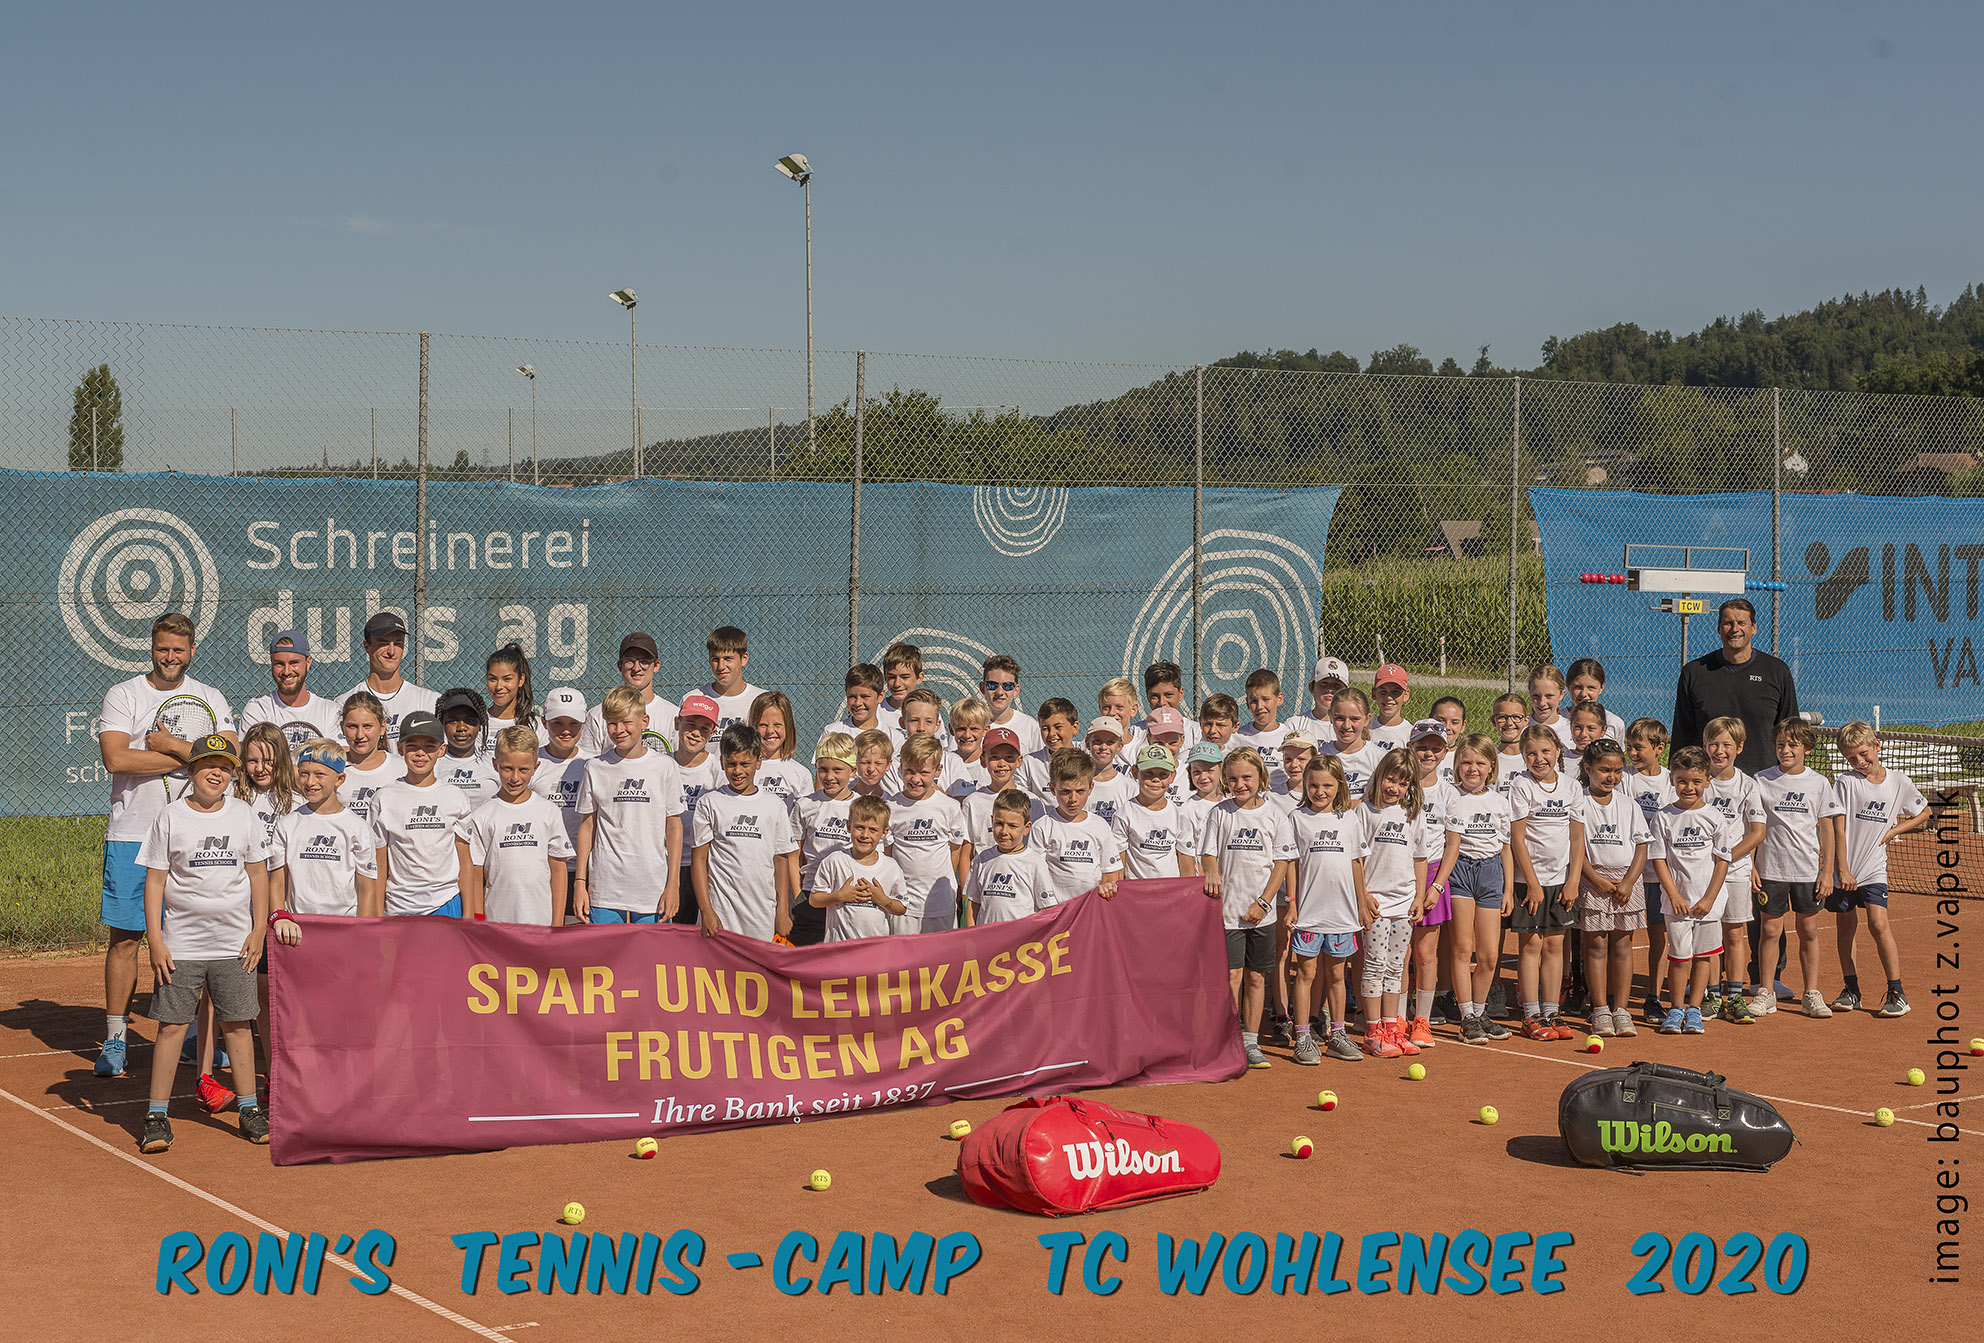 Ronis Camp 2020 Wohlensee00